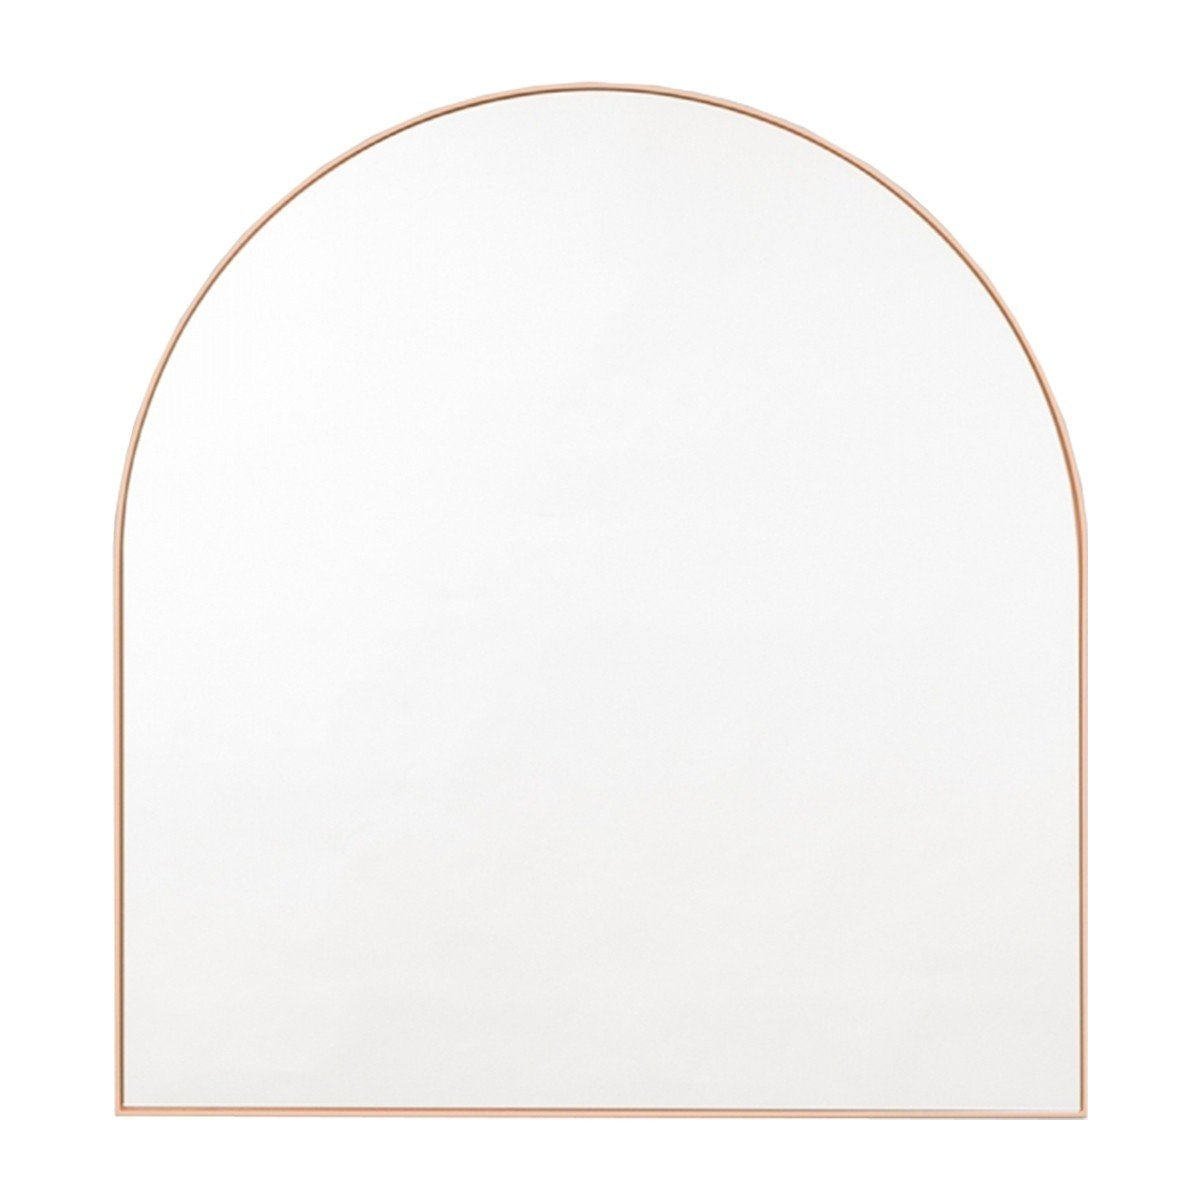 Arch Brass Gold Mirror by Just in Place, a Mirrors for sale on Style Sourcebook